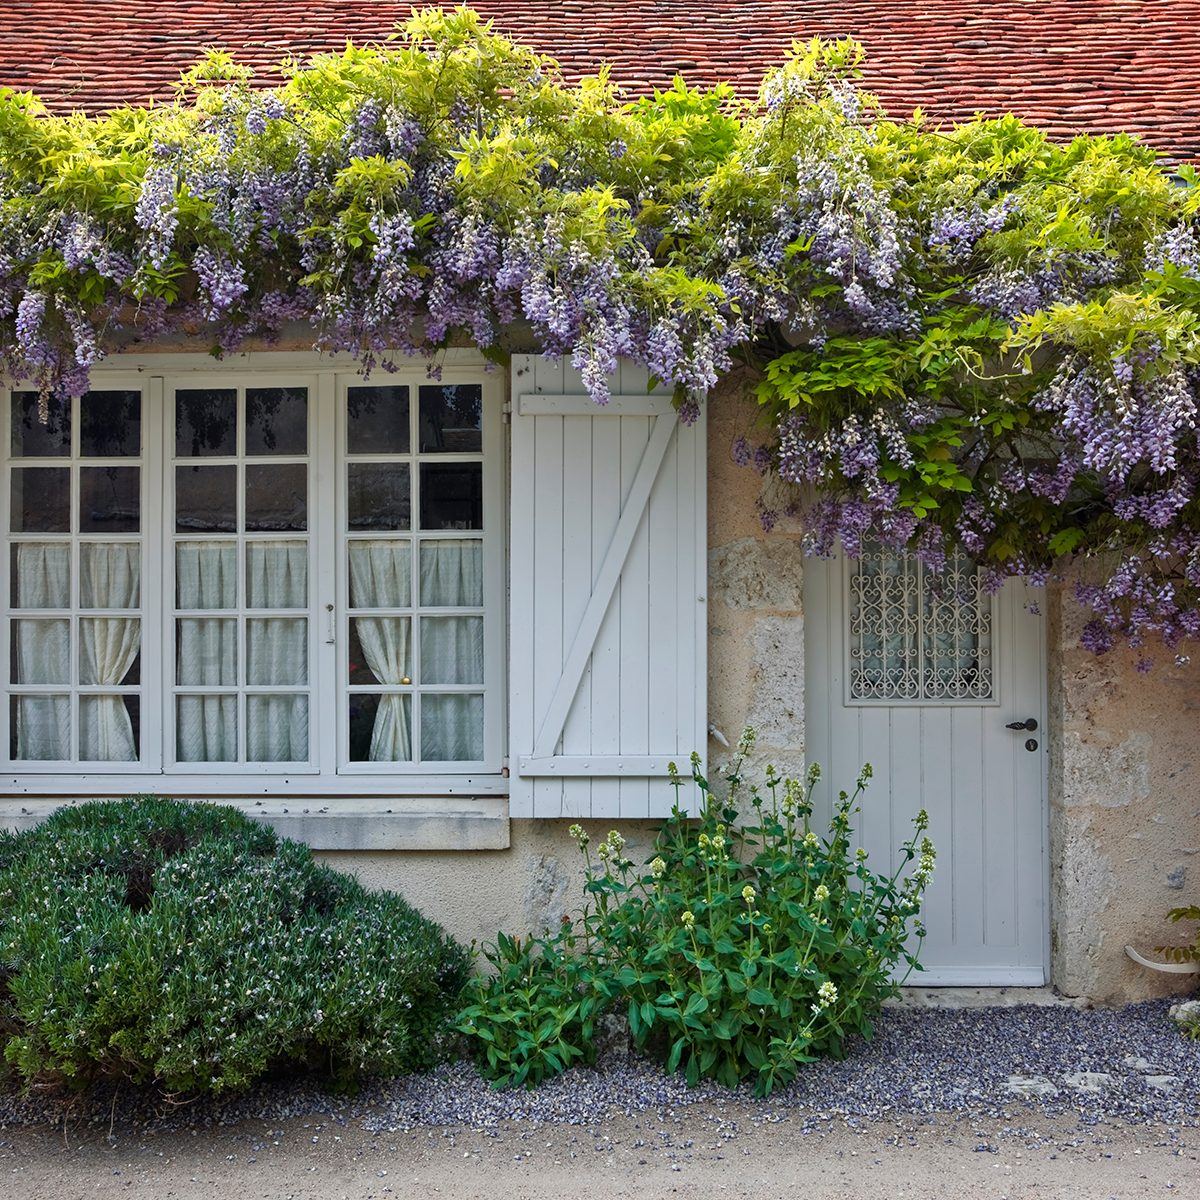 Clematis in full bloom surrounds the front of a house in saint-dyé-sur-loire, France. This small village is found on the edge of the Loire river.